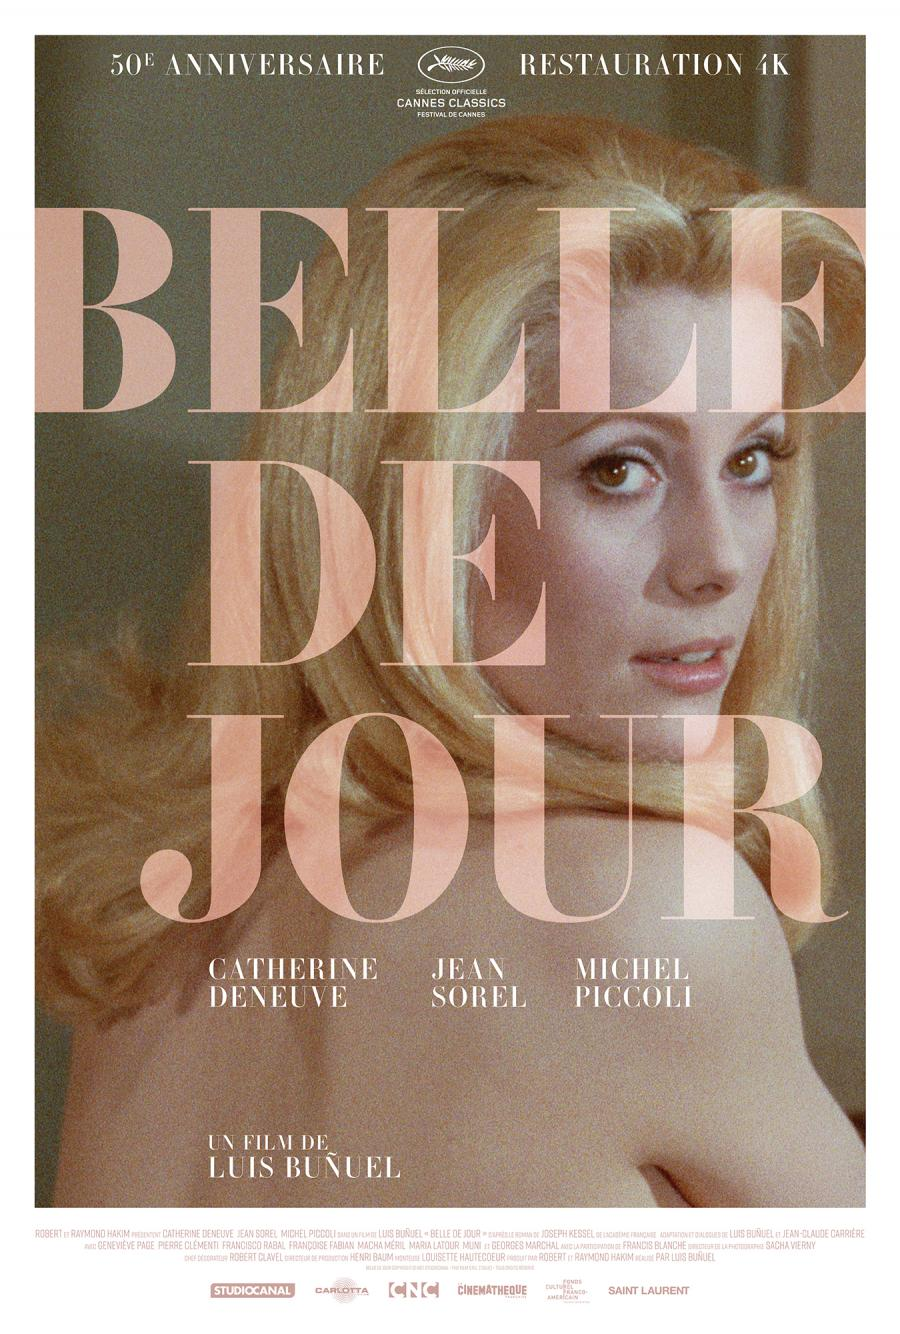 Belle De Jour (1967) - Directed by: Luis BunuelStarring: Catherine Deneuve, Jean Sorel, Michel Piccoli, Genevieve PageRated: RRunning Time: 1 h 40 mTMM Score: 4.5 stars out of 5STRENGTHS: Writing, Directing, Acting, CinematographyWEAKNESSES: -